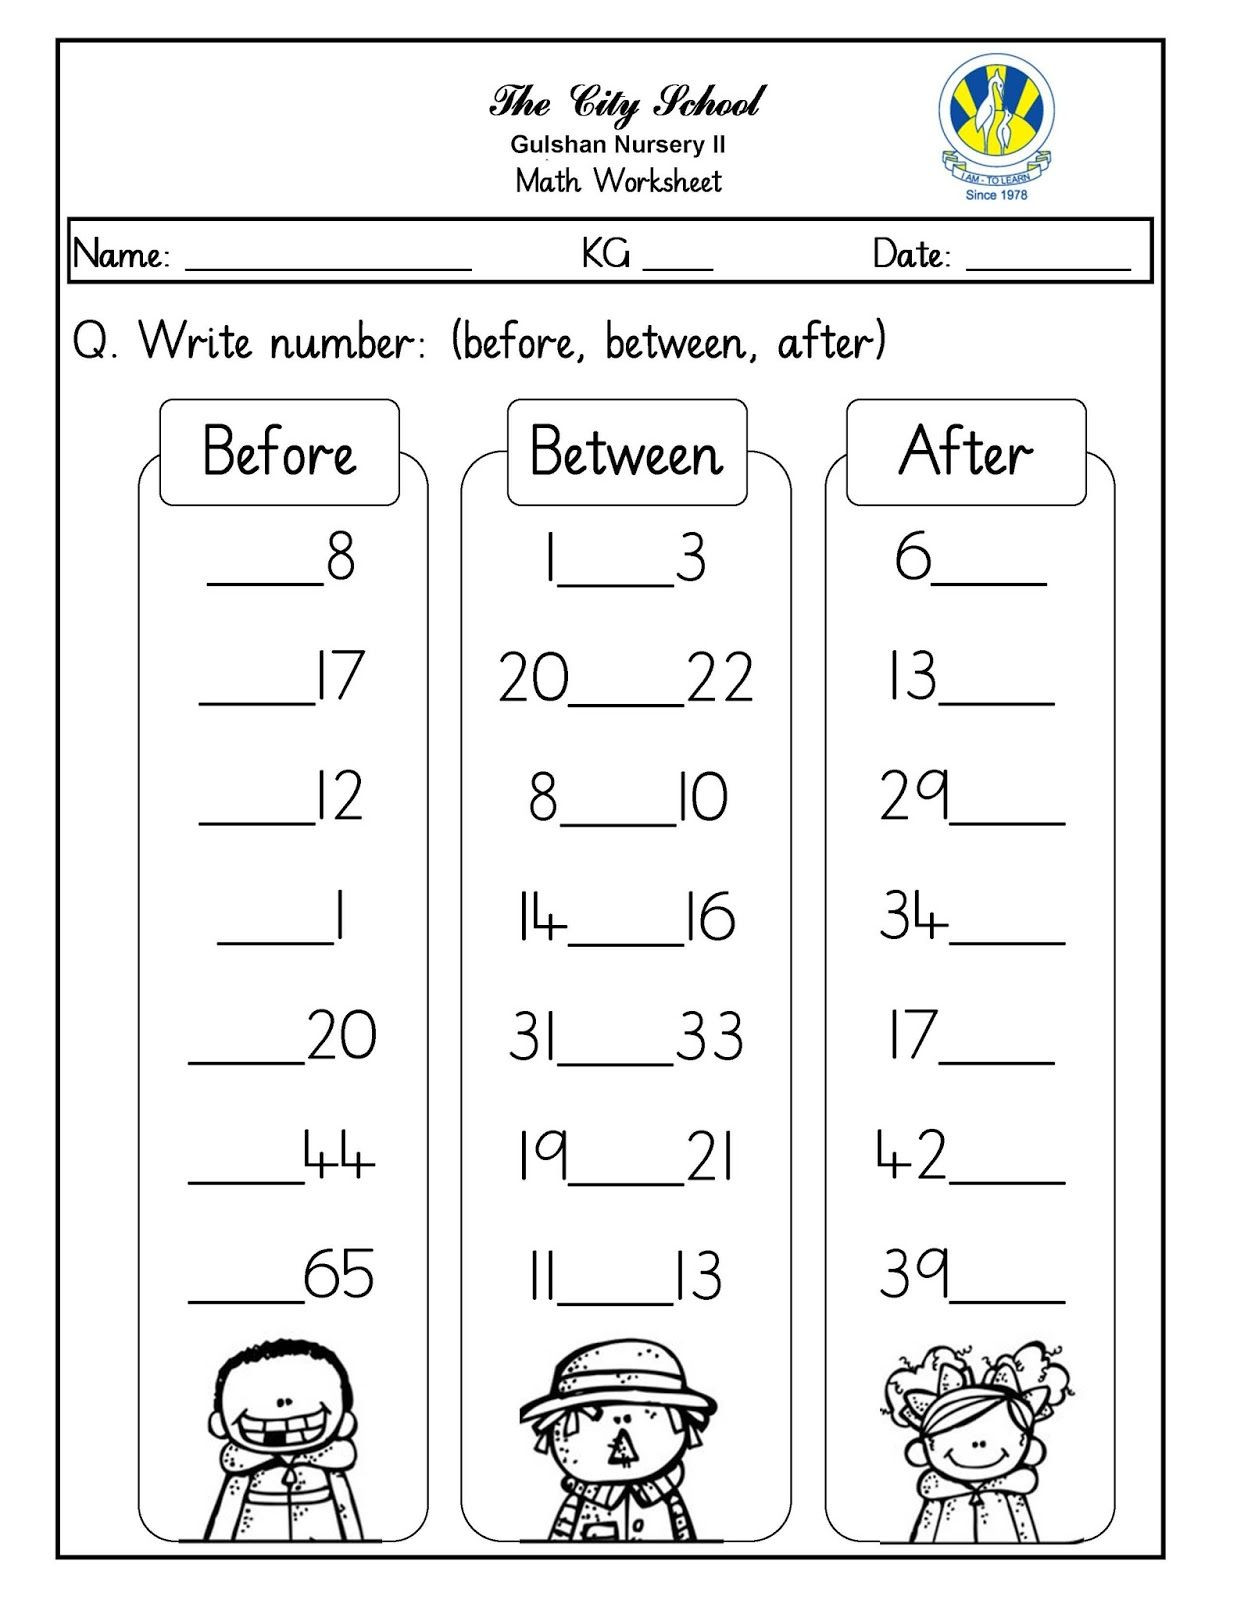 Numbers before and after Worksheet Numbers before after and Between Free Printable